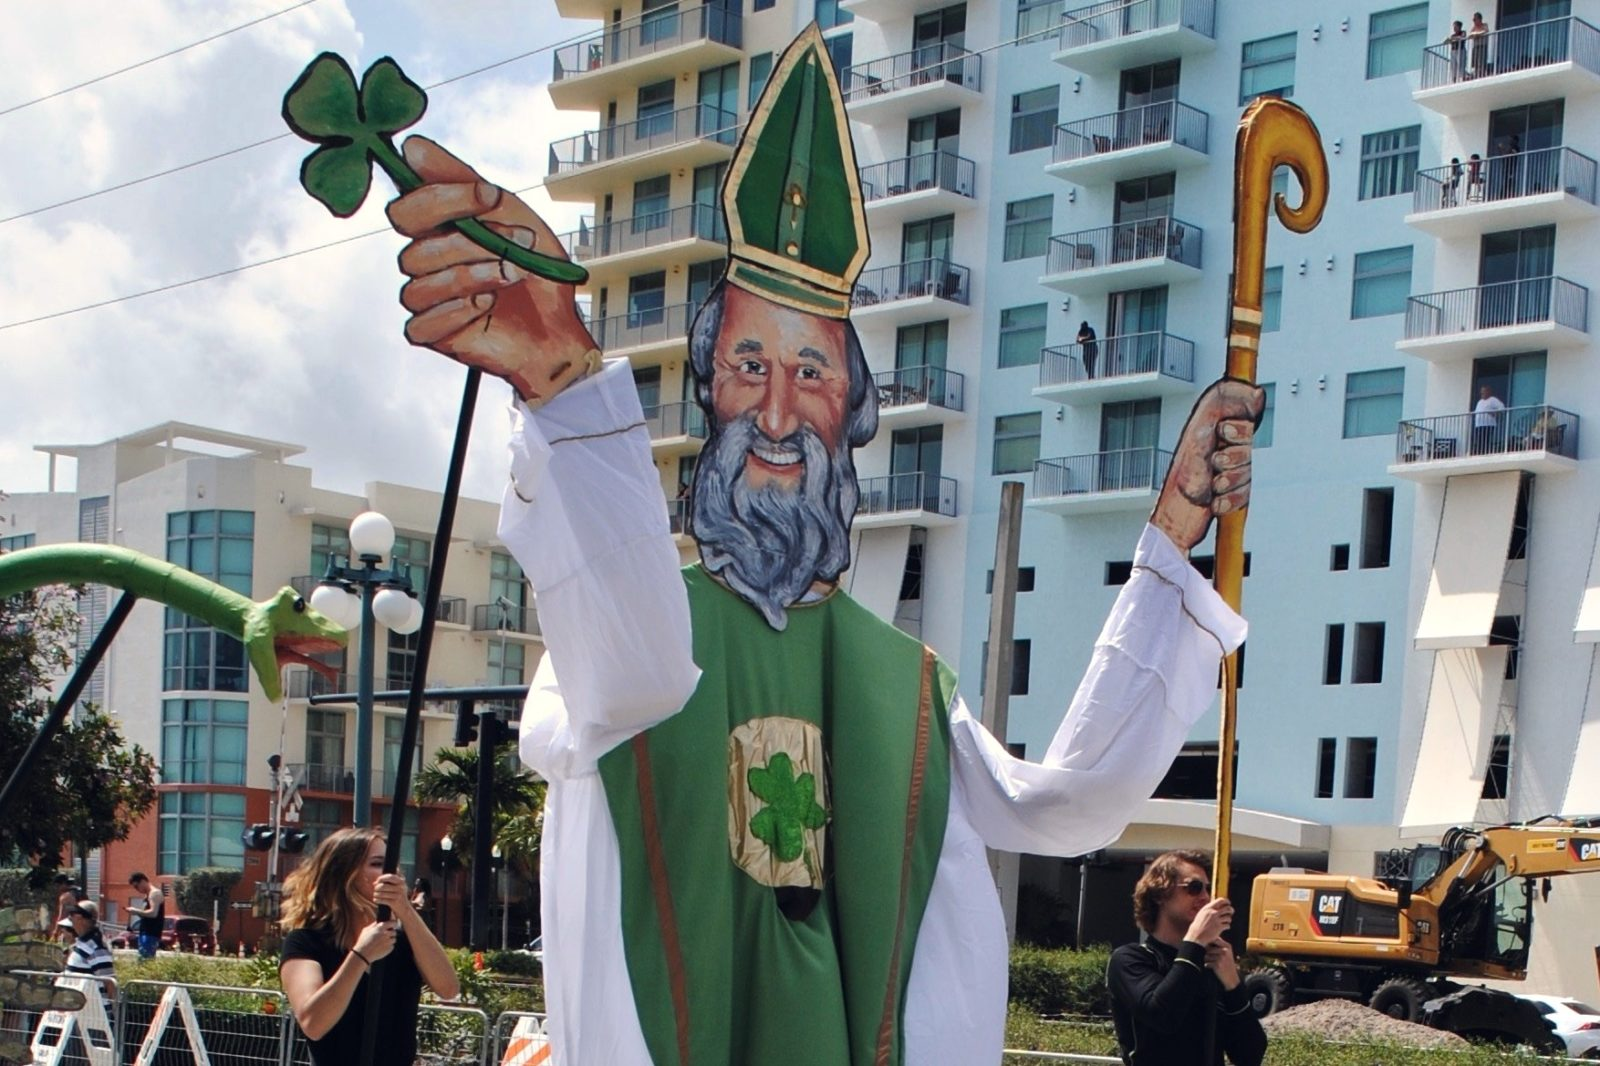 9 Ways to Celebrate St. Patrick's Day at Any Age